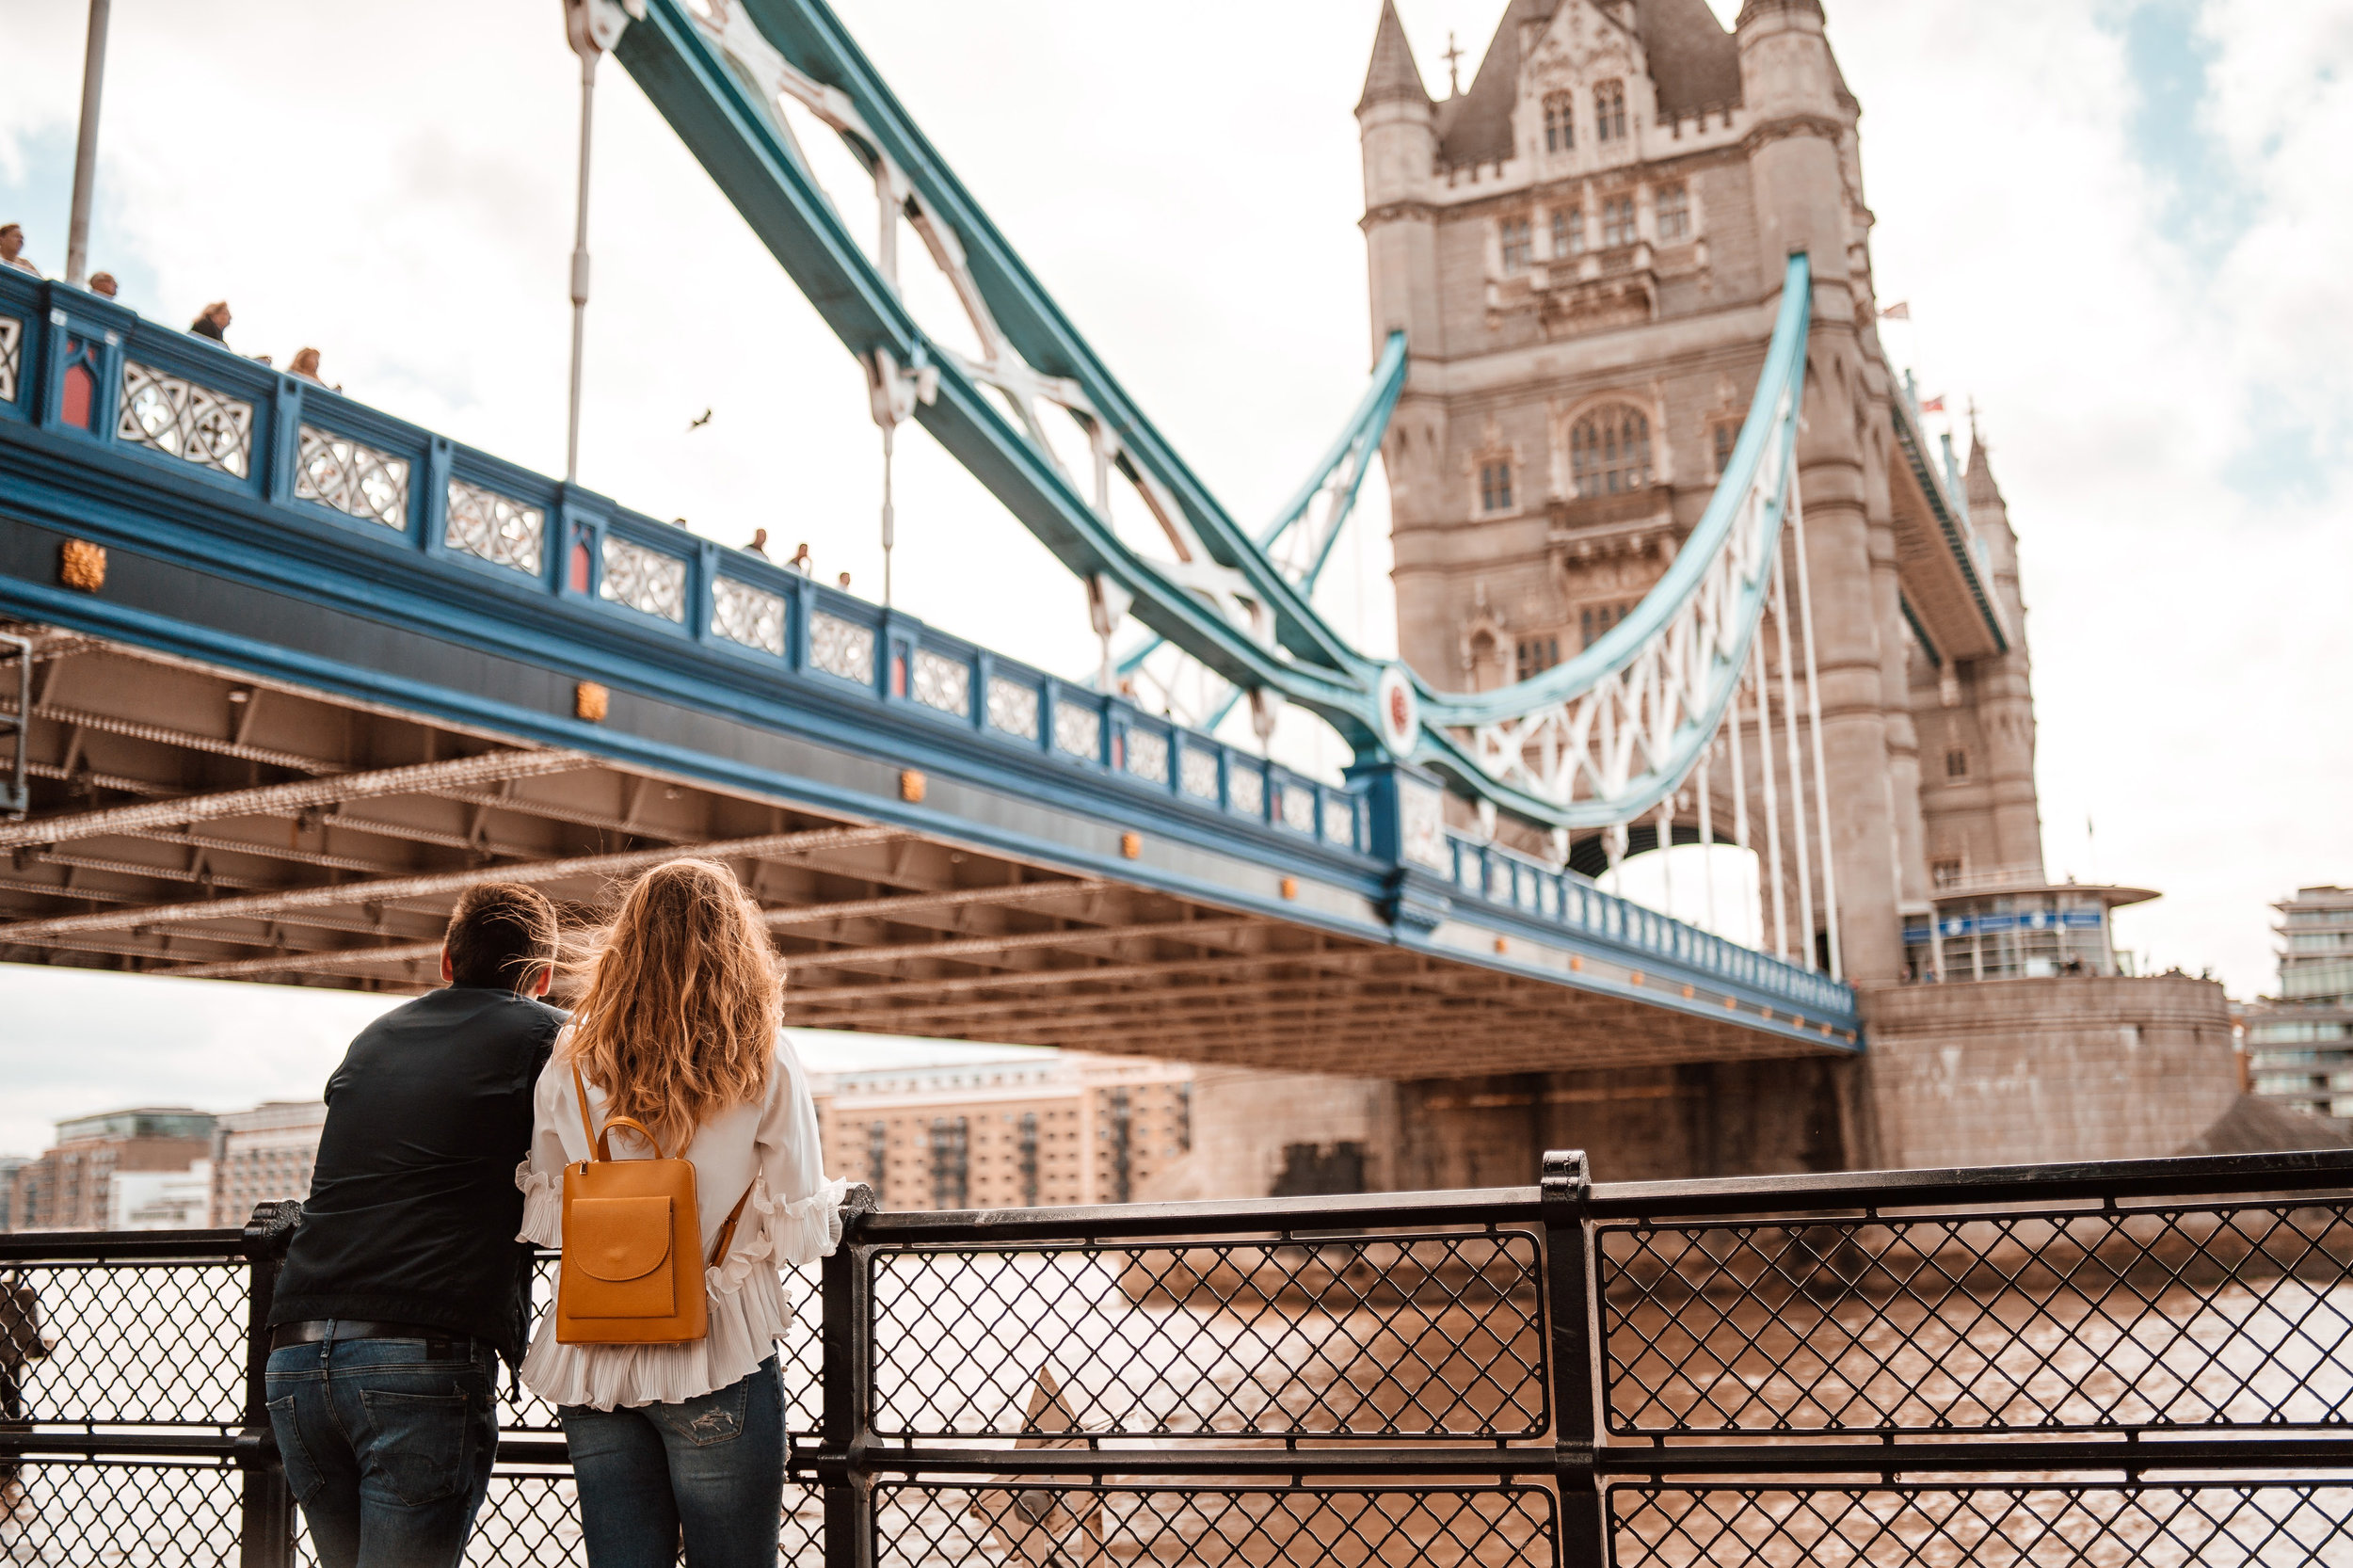 Destination_Wedding_London_Engagement_Session_Photographer-136.jpg